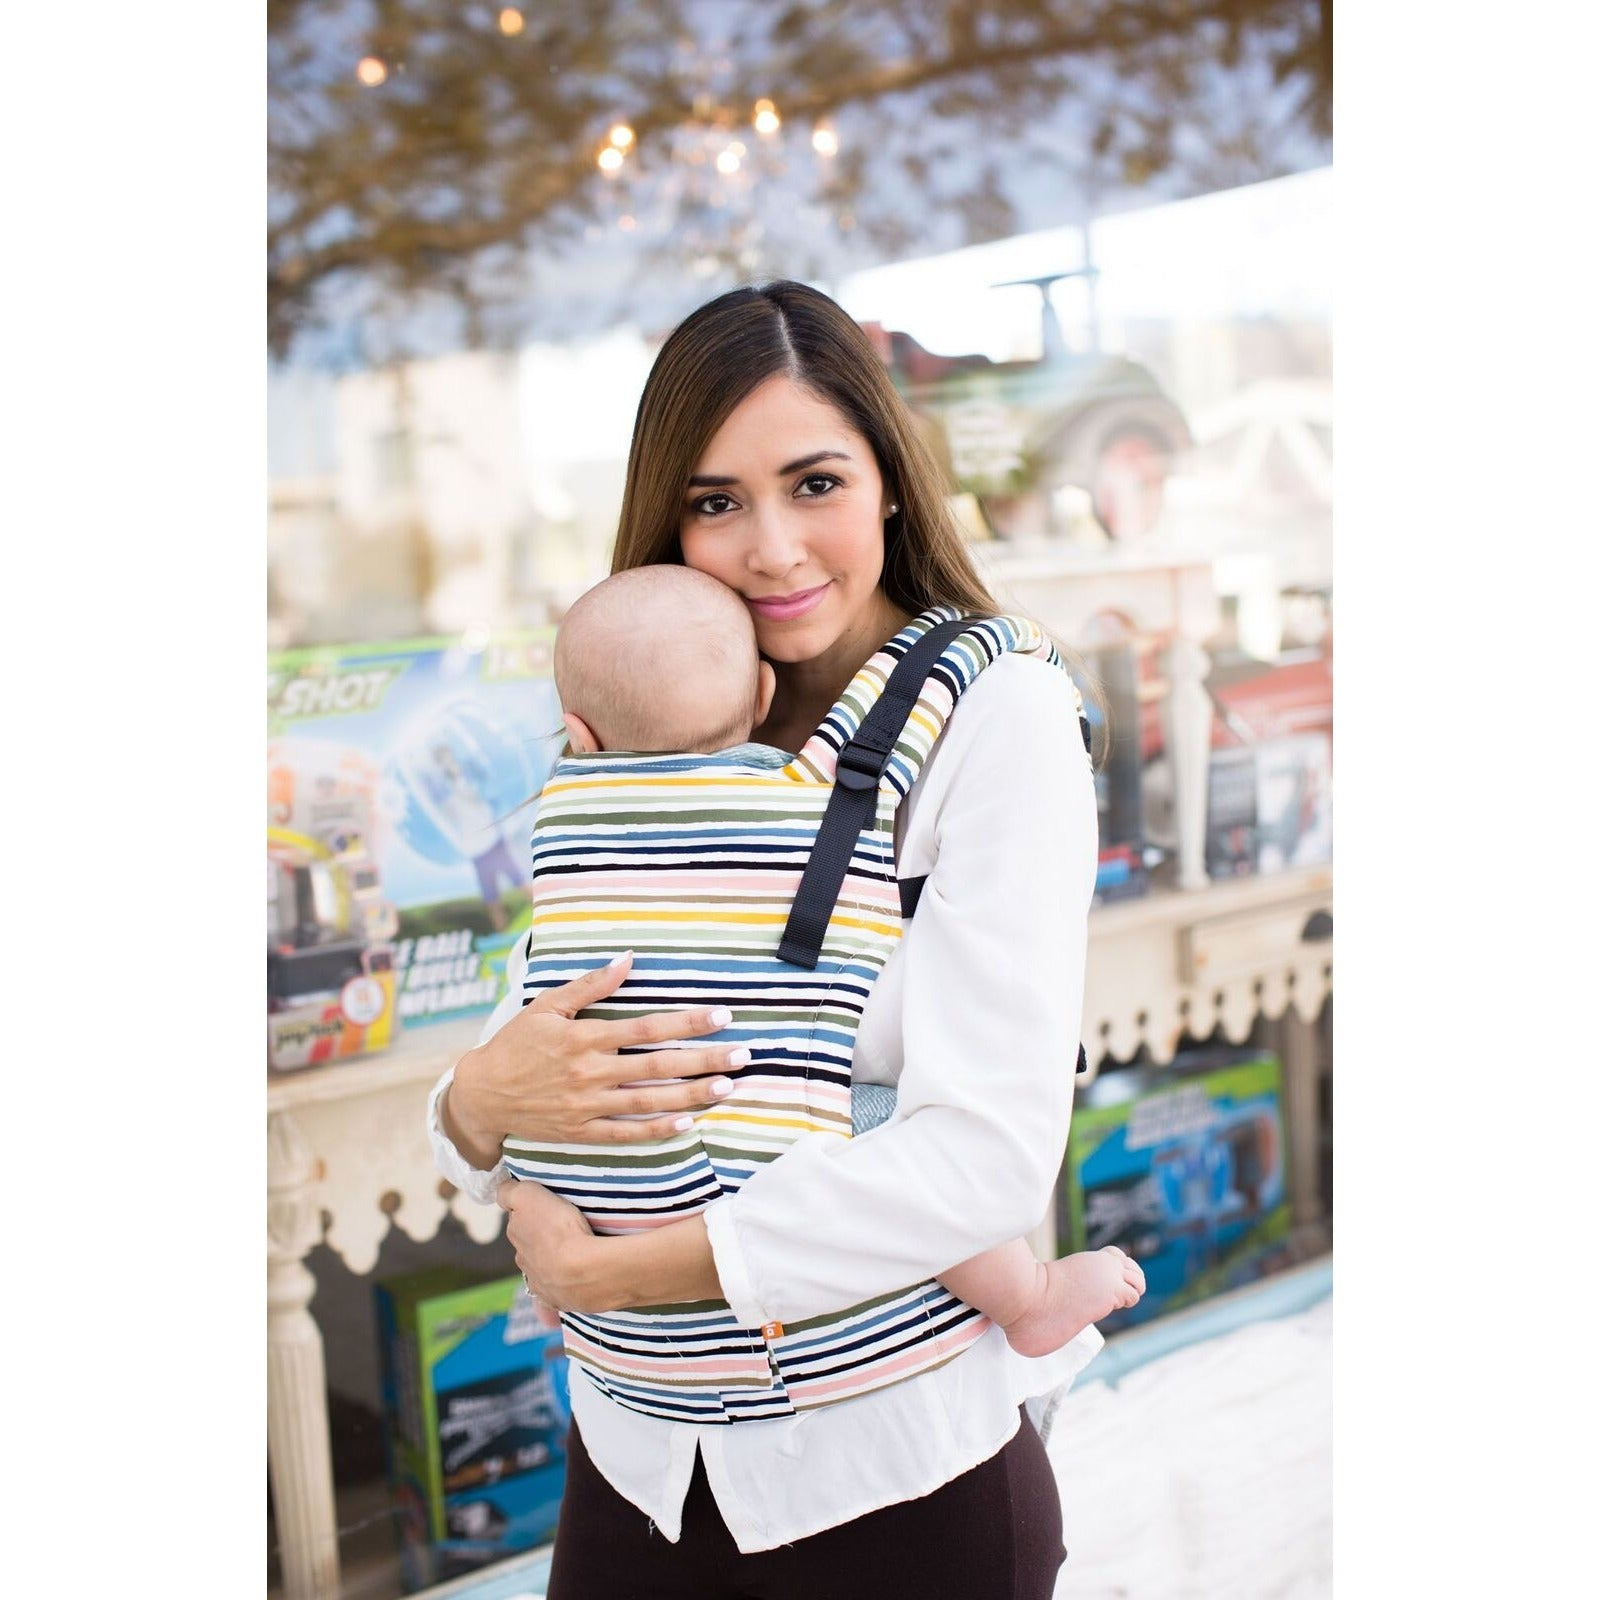 962fa9bbe54 Tula Free-To-Grow Carrier - Shoreline - Baby Carrier - Tula - Afterpay